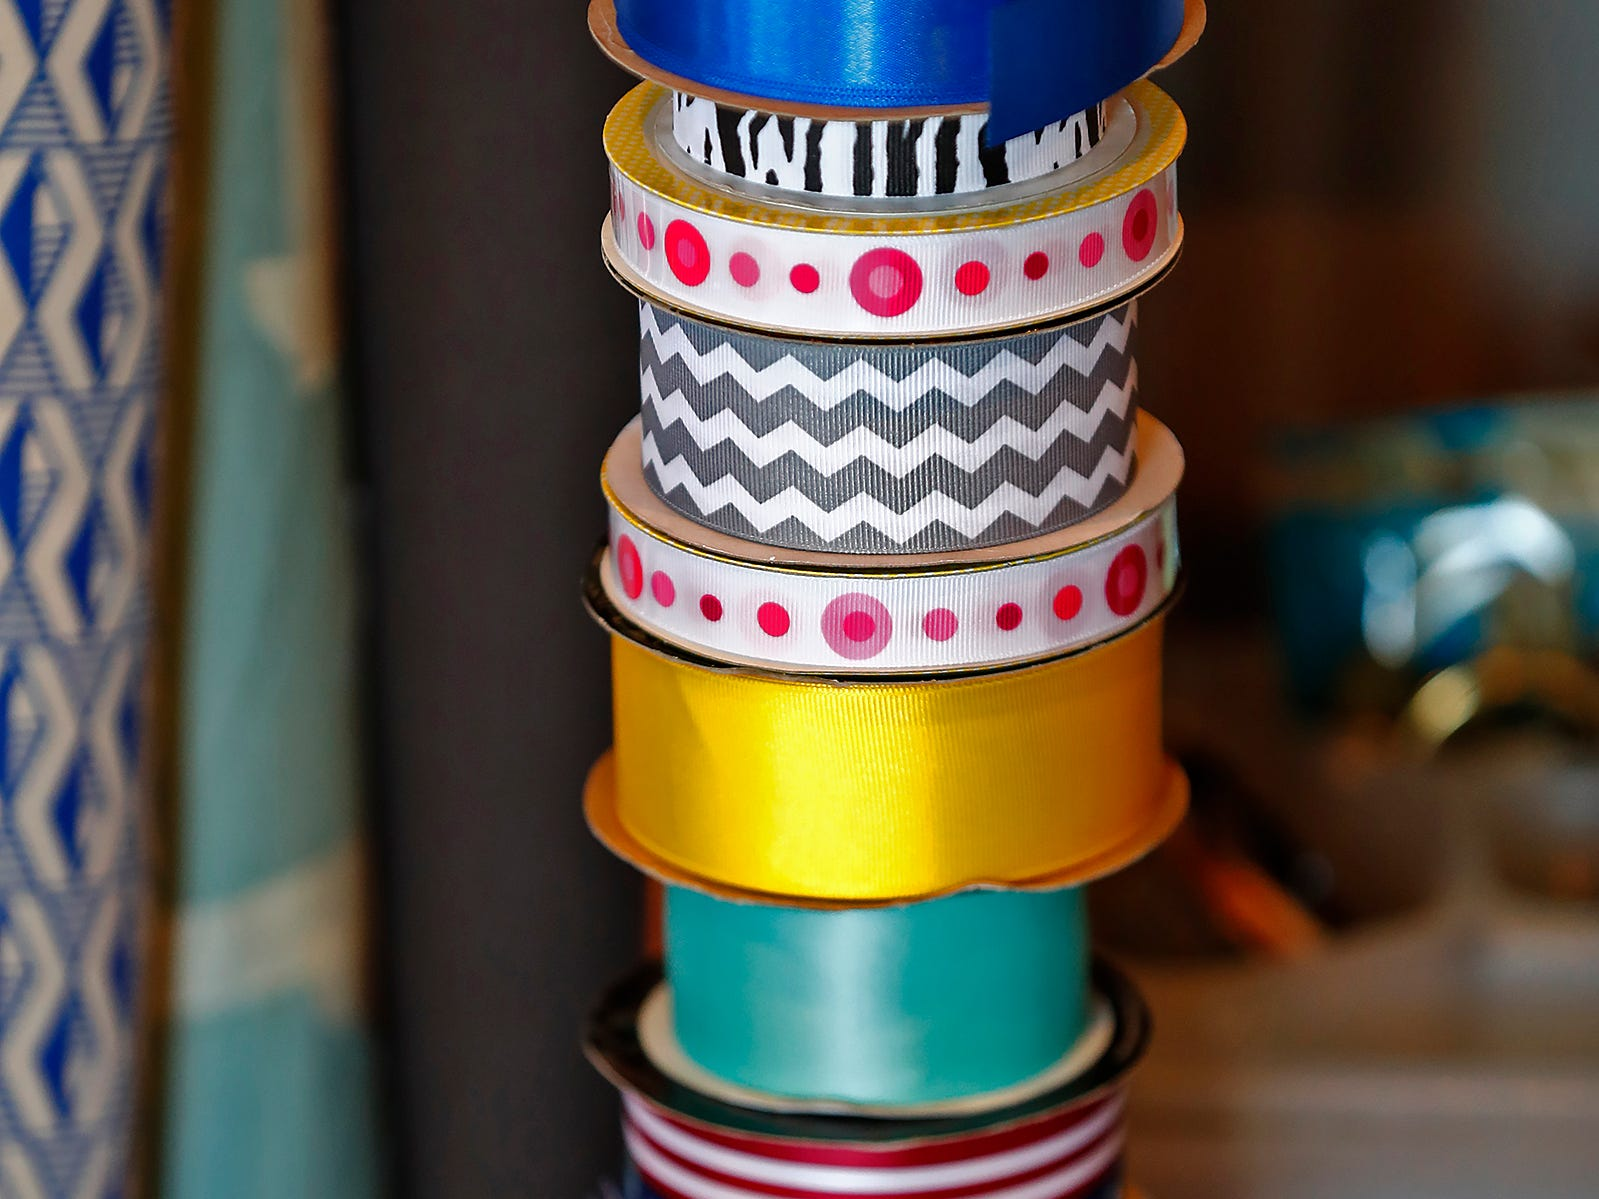 Ribbons are seen for sale at ReCraft, Tuesday, Dec. 11, 2018.  Many of the store's items are donated or ready for re-use. ReCraft was born out of Bethany Daugherty's love of crafting and her interest in environmental activism.  At the secondhand craft and hobby store, Daugherty also teaches workshops.  Sustainability and environmentalism are the focus of the store.